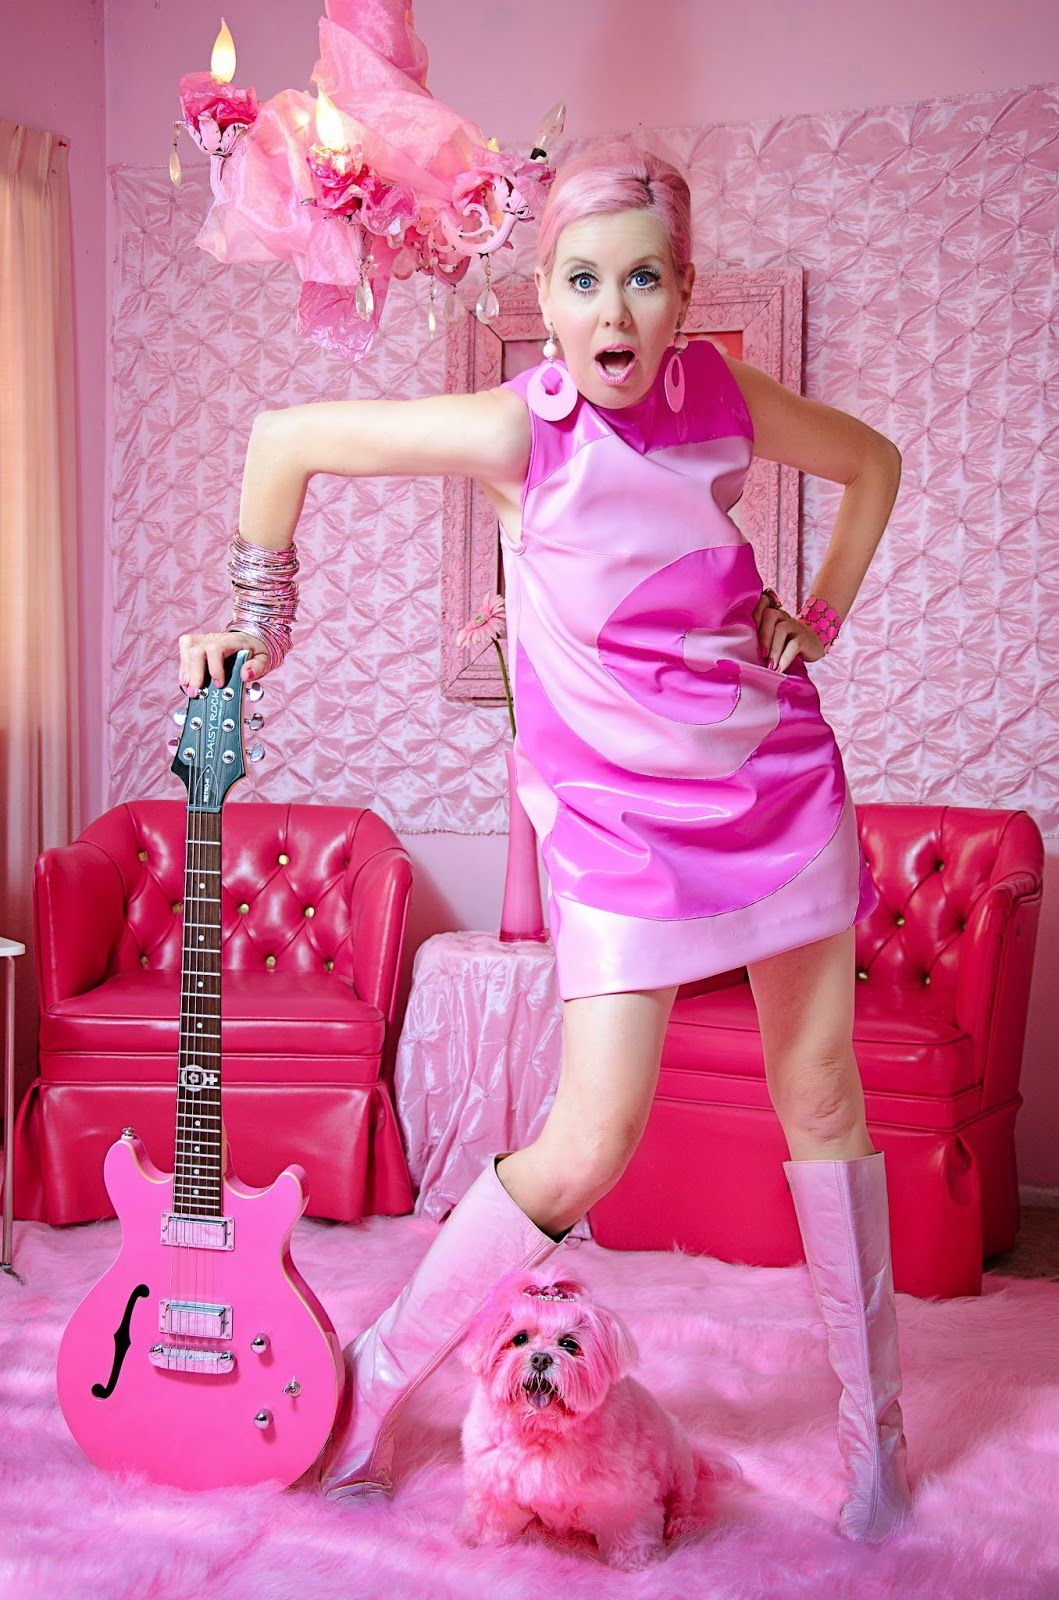 Love Pink Meet Kitten Sera The World S Official Pinkest Person Pink Ladies Pink Outfits Pink